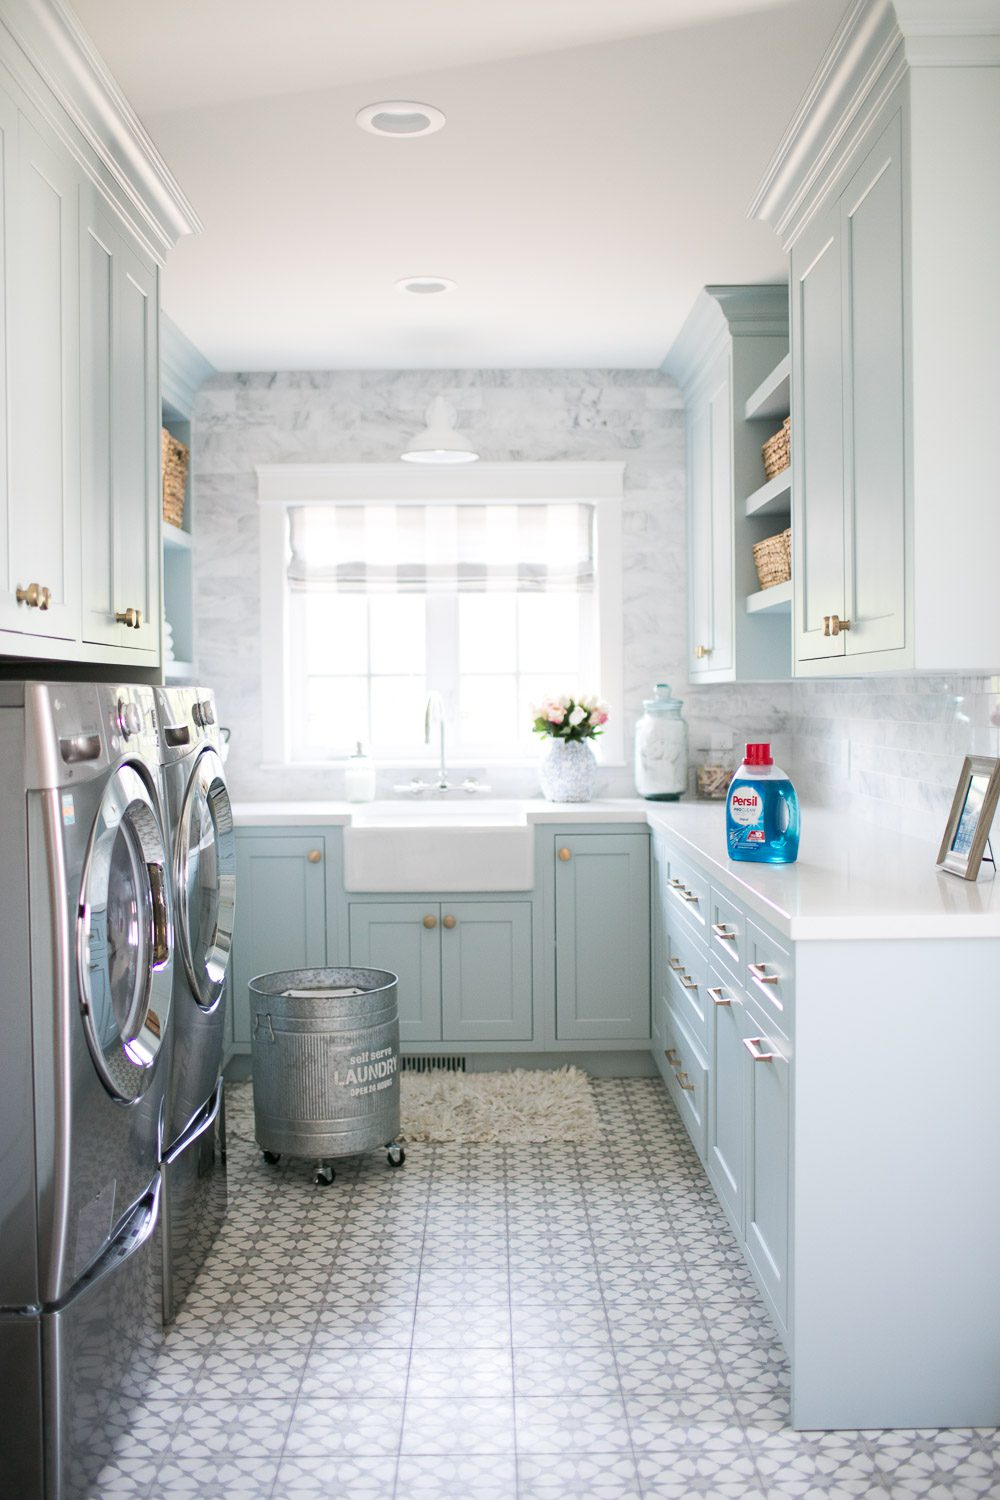 5 Tips For An Innovative Laundry Room